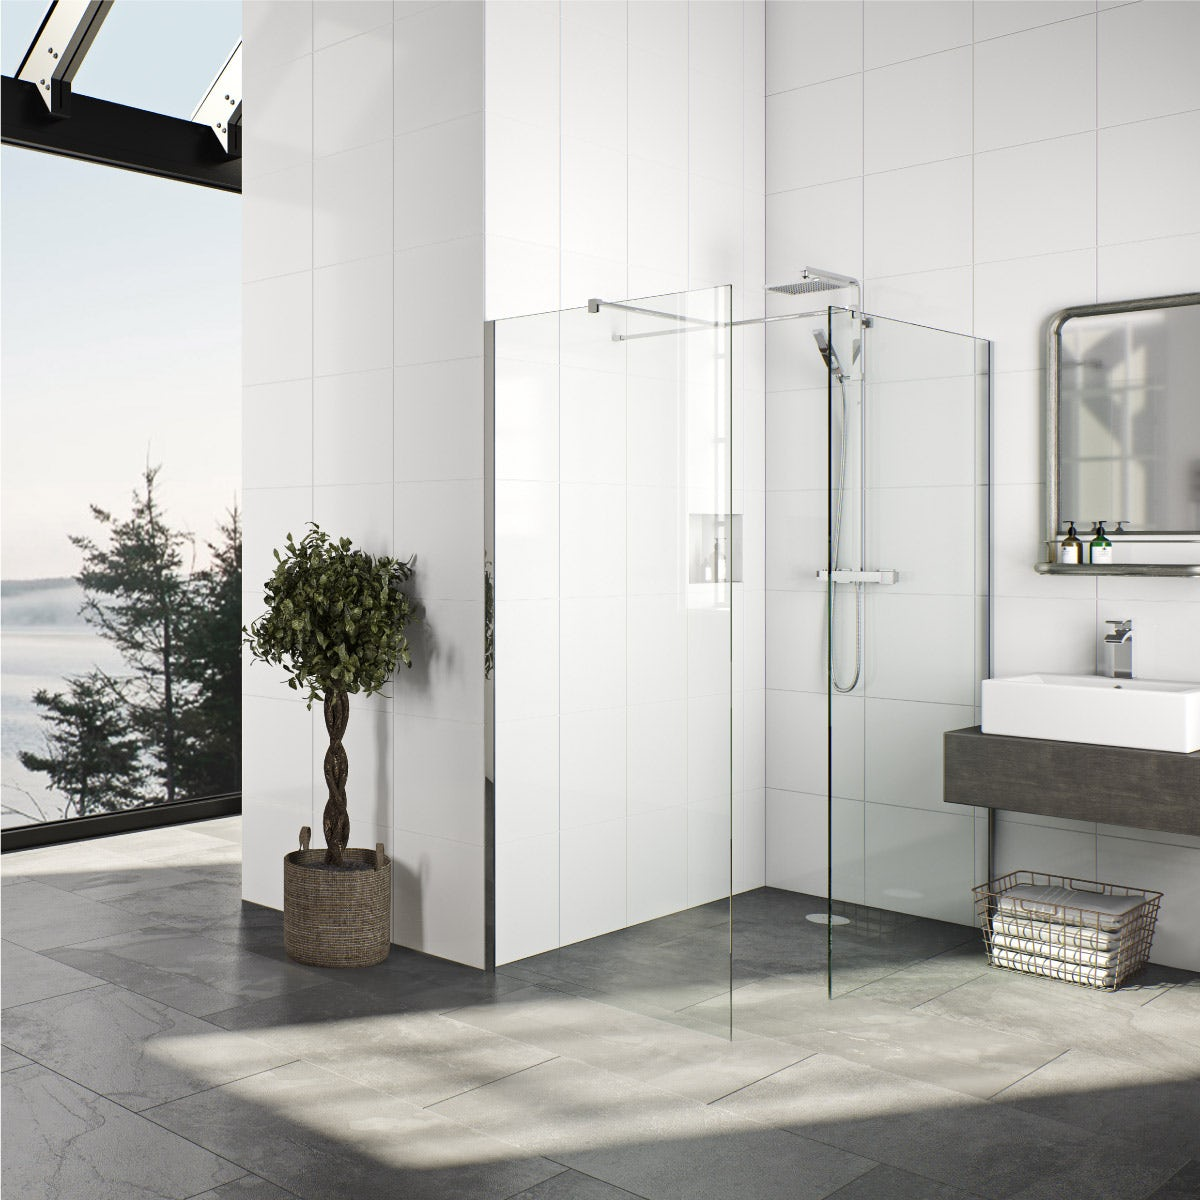 Attrayant Representing The Pinnacle Of Quality Design, We Take The Lead When It Comes  To Fashionable Bathrooms, Creating Products That Are Utterly Desirable And  ...